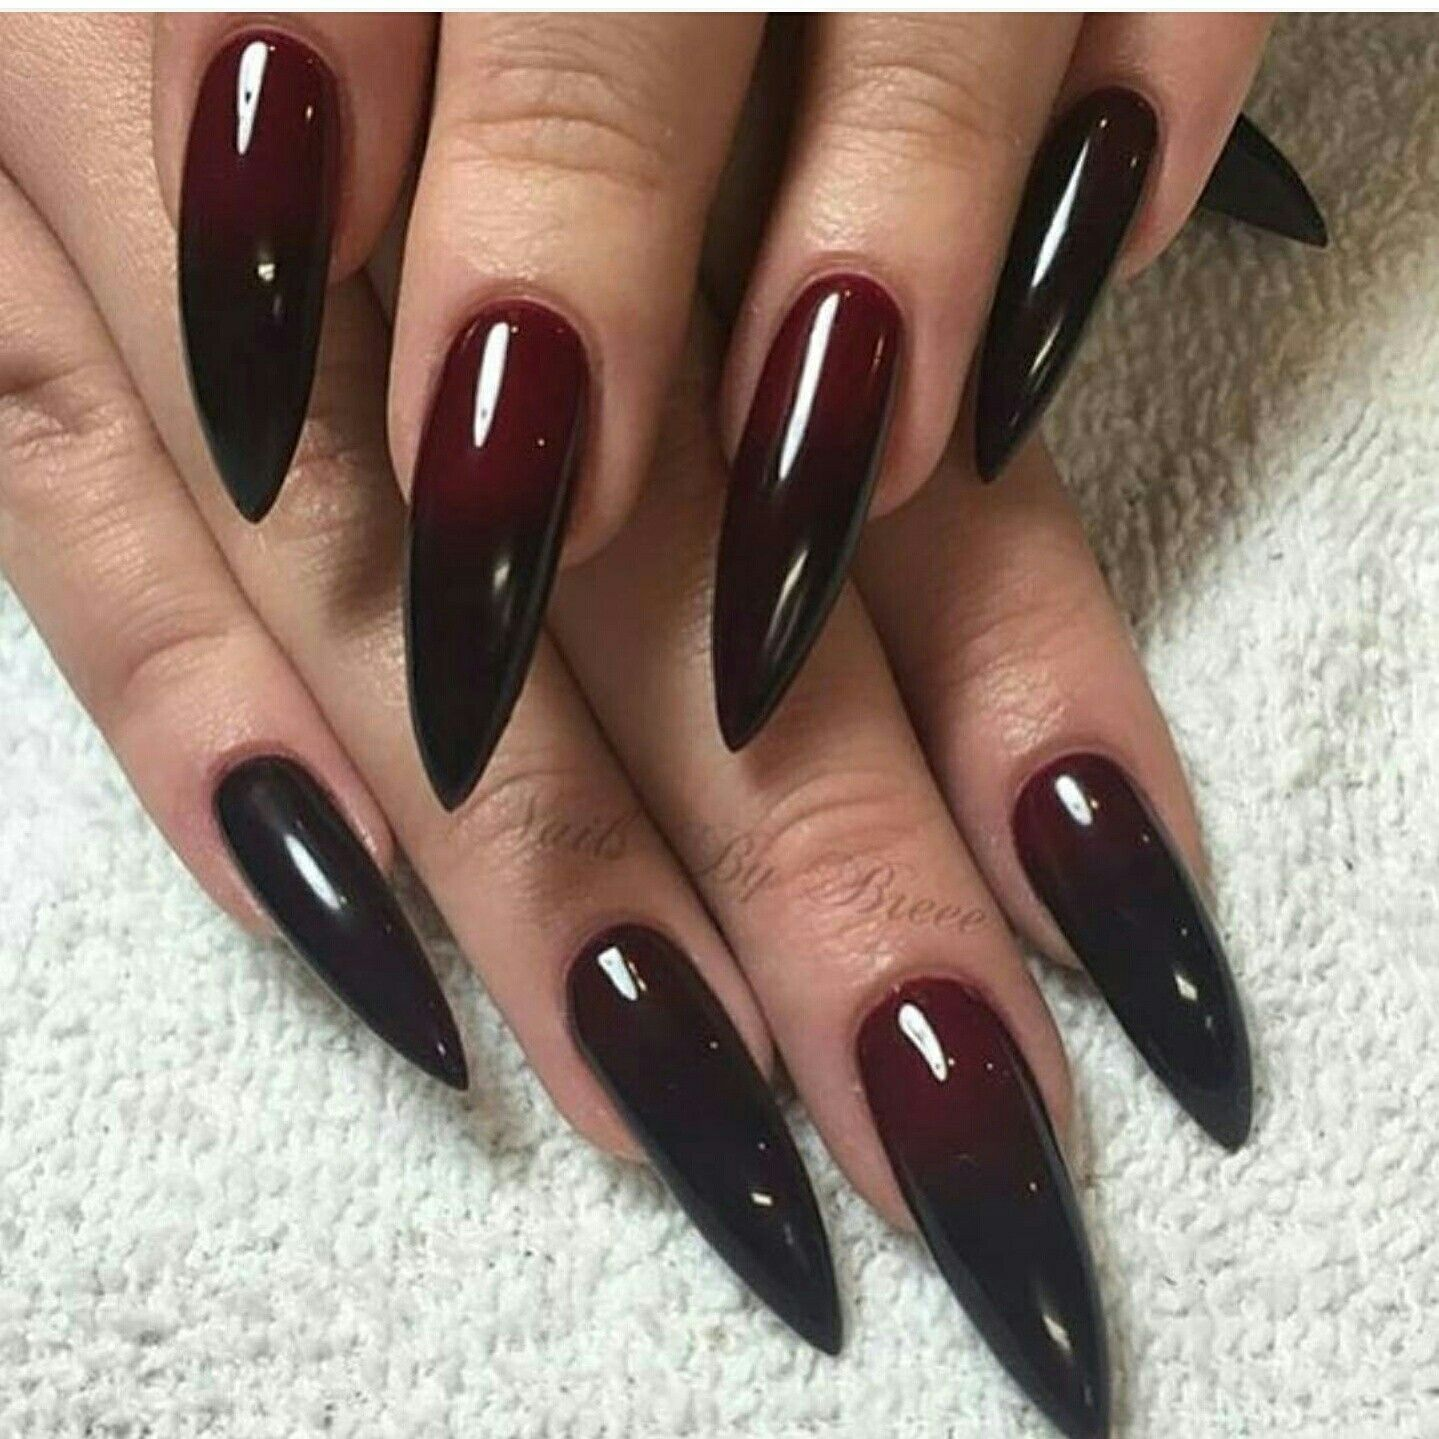 Beautiful | Gothic nails, Goth nails, Vampire nails